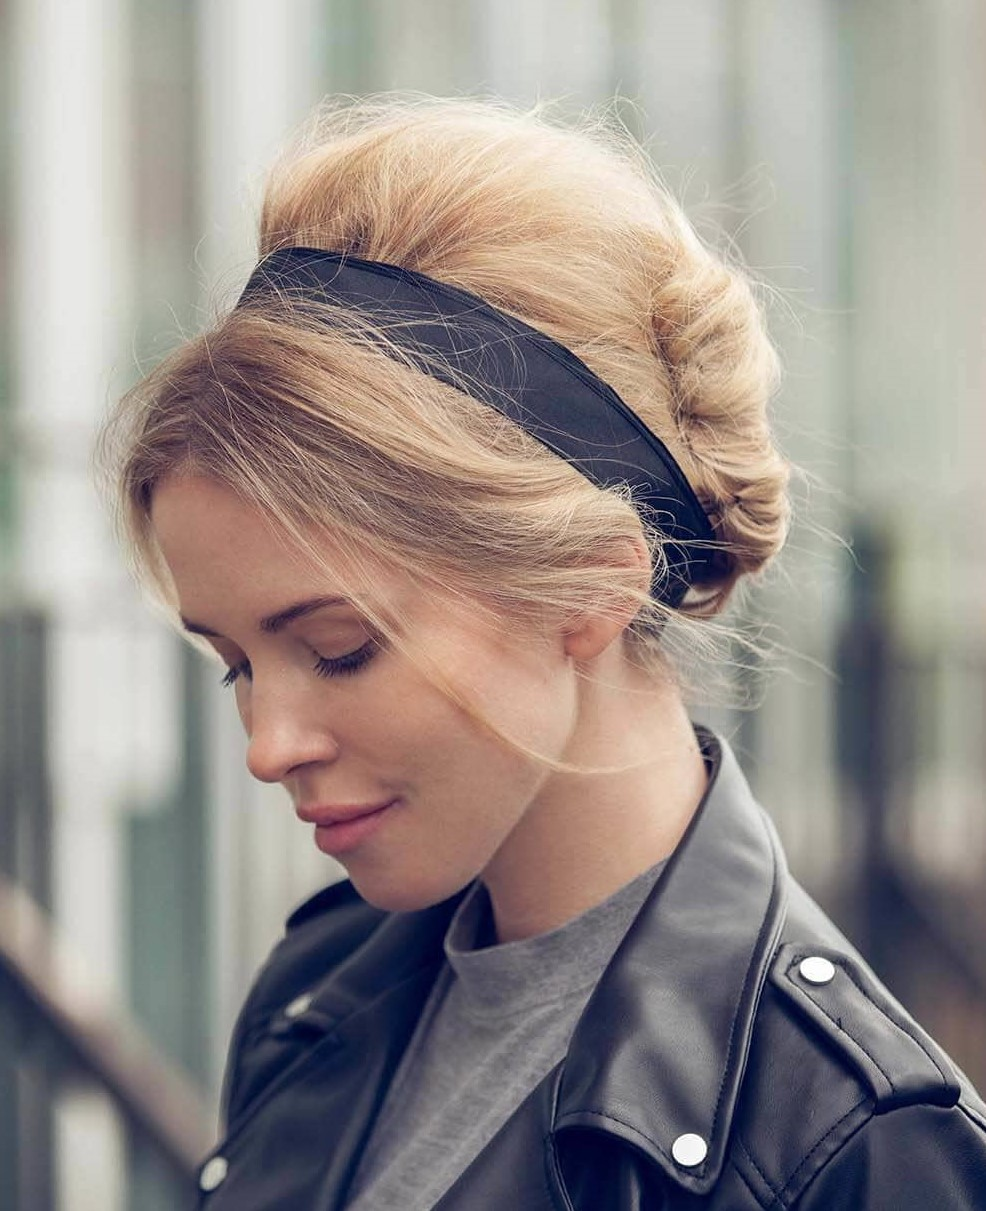 medium-how-to-style-hair-accessories-headbands-hairstyles-ways-to-wear-60s-french-twist-beehive.jpg